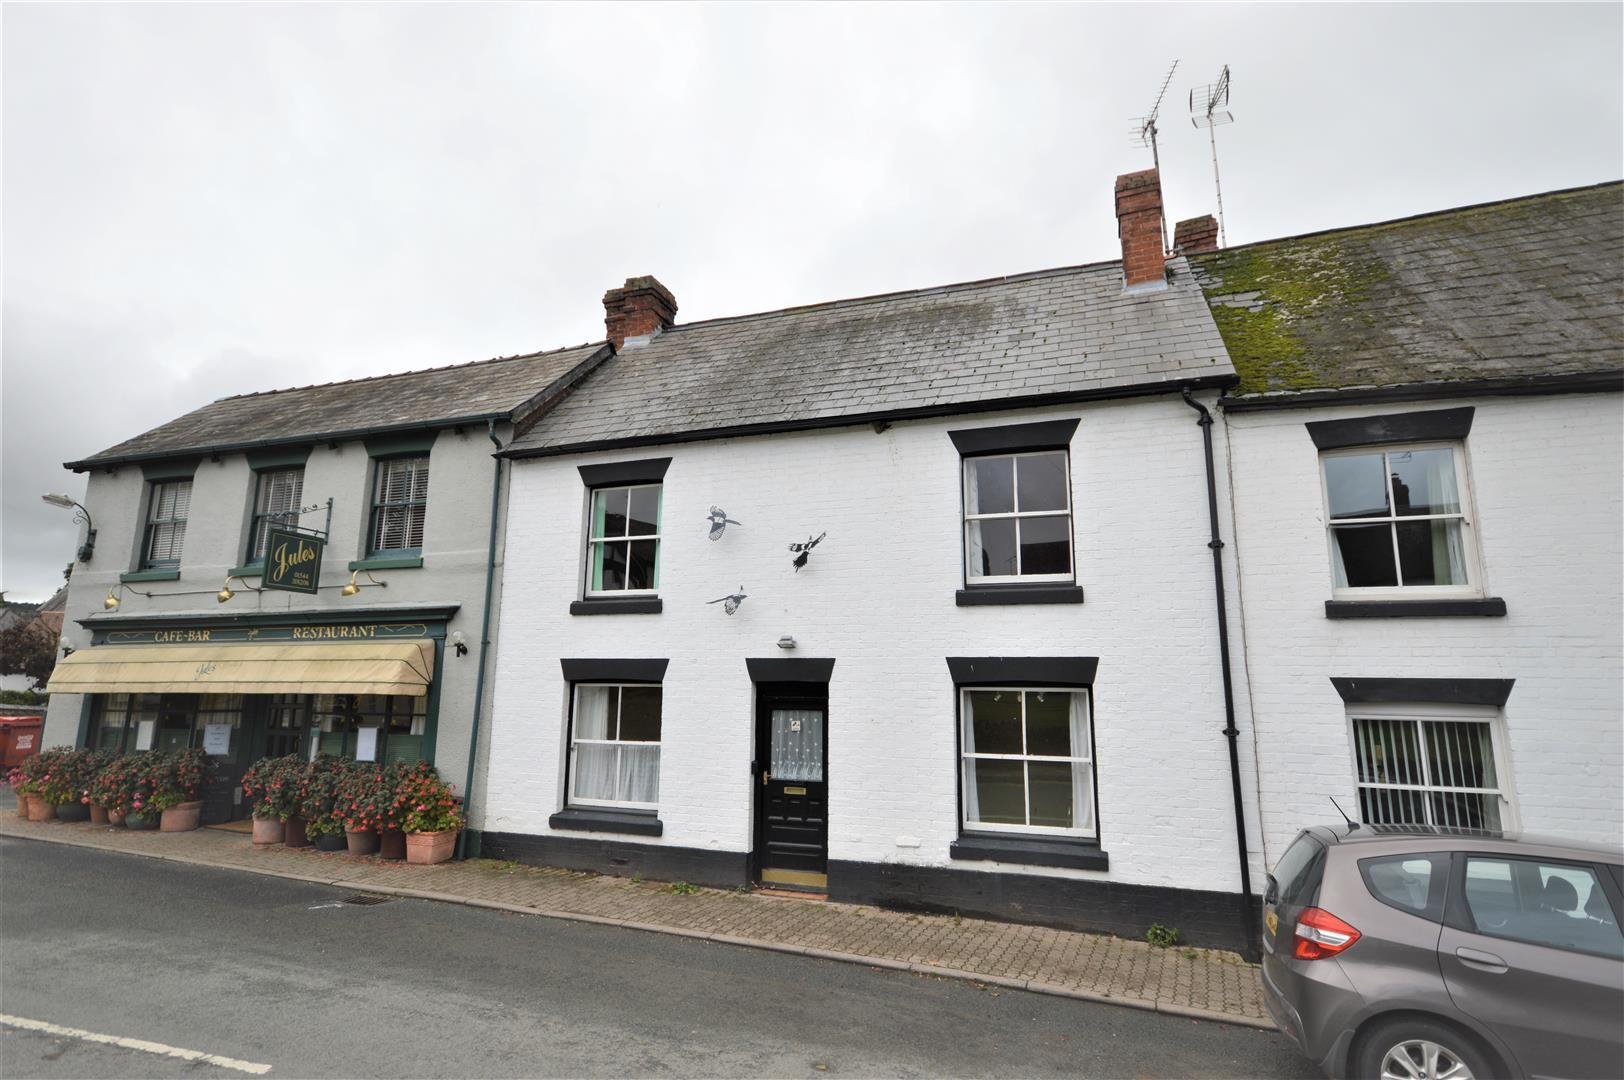 3 bed cottage for sale in Weobley - Property Image 1